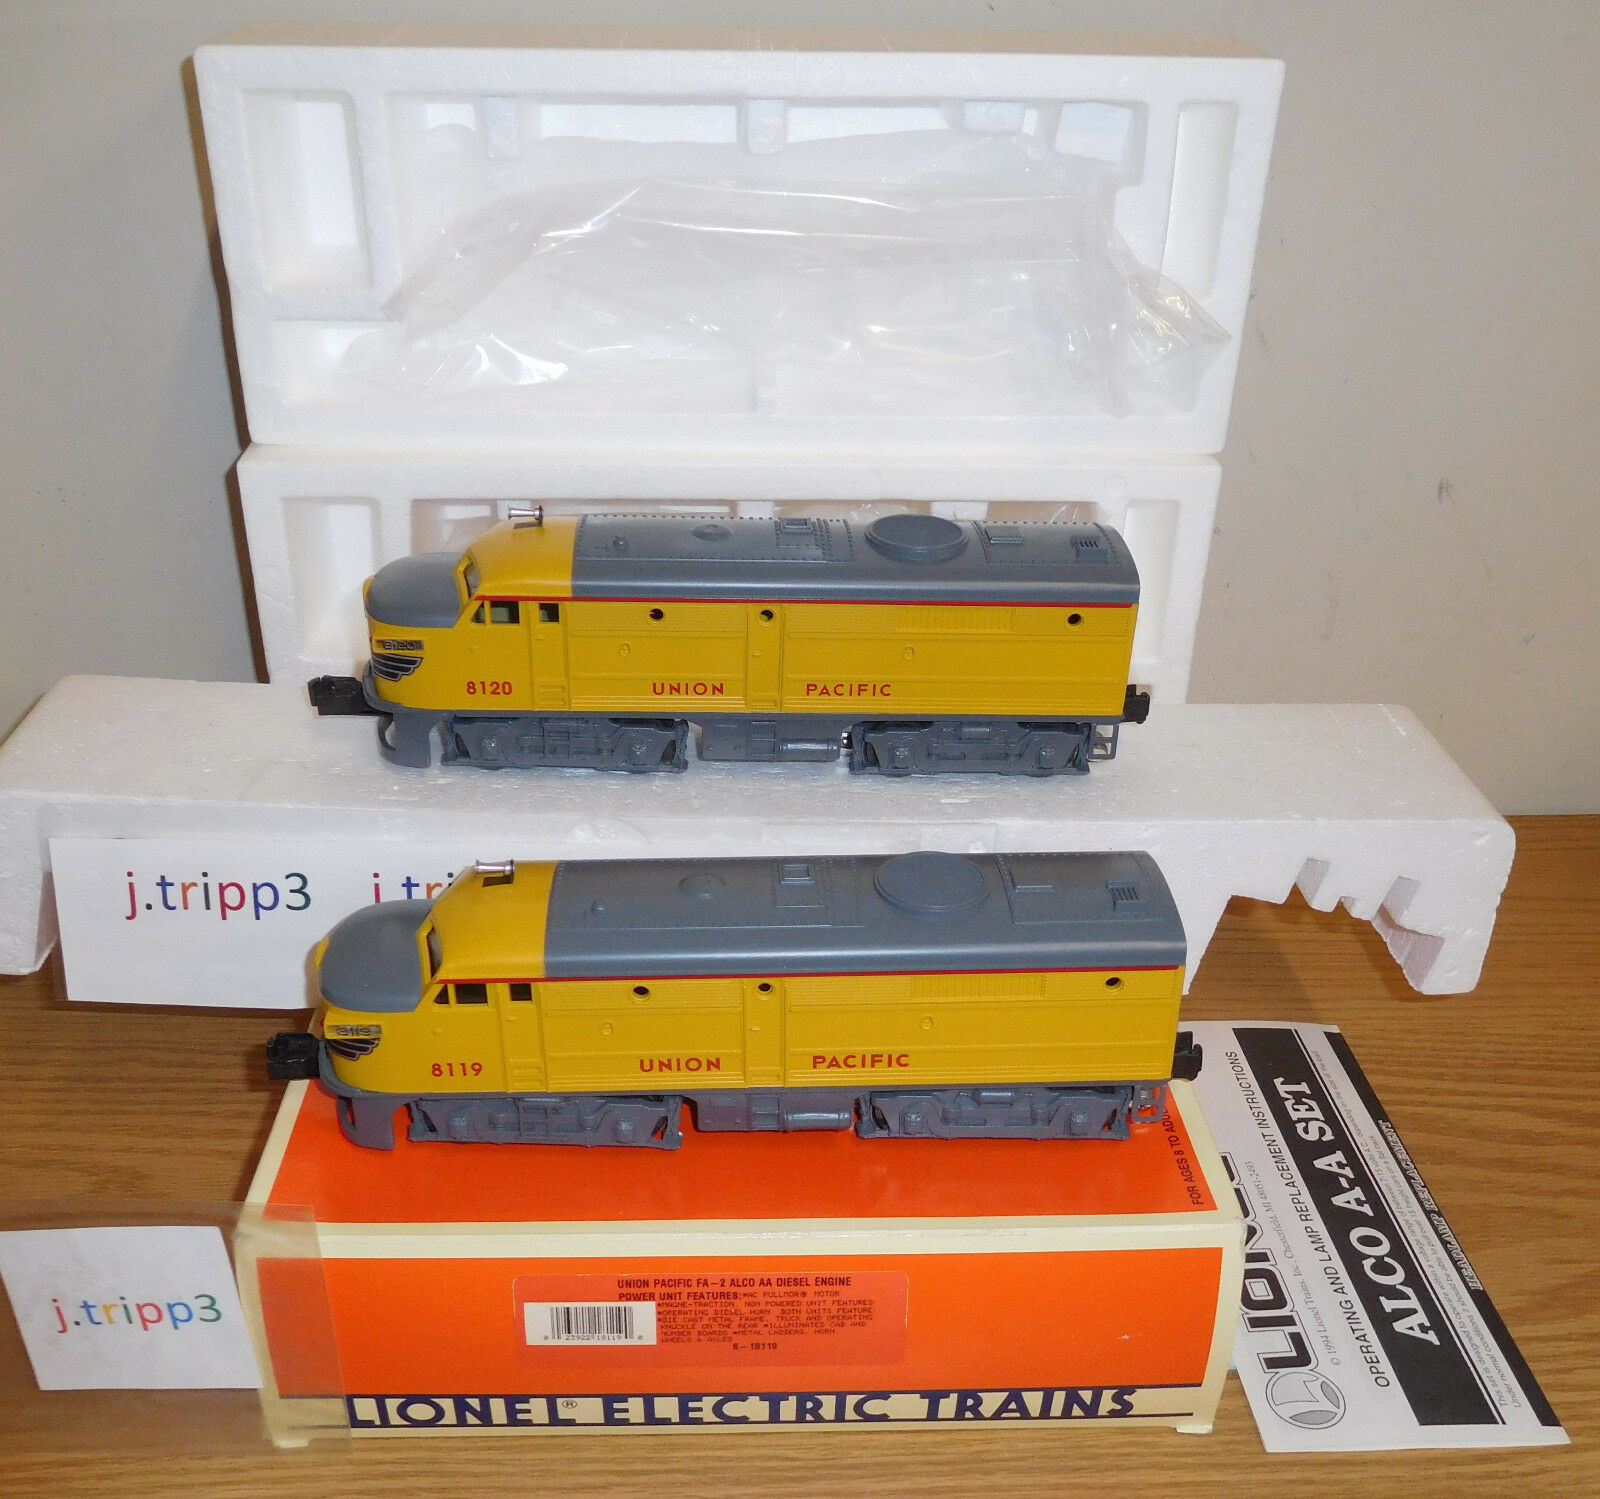 LIONEL 18119 UNION PACIFIC ALCO AA DIESEL ENGINE LOCOMOTIVE TRAIN O GAUGE SEALED